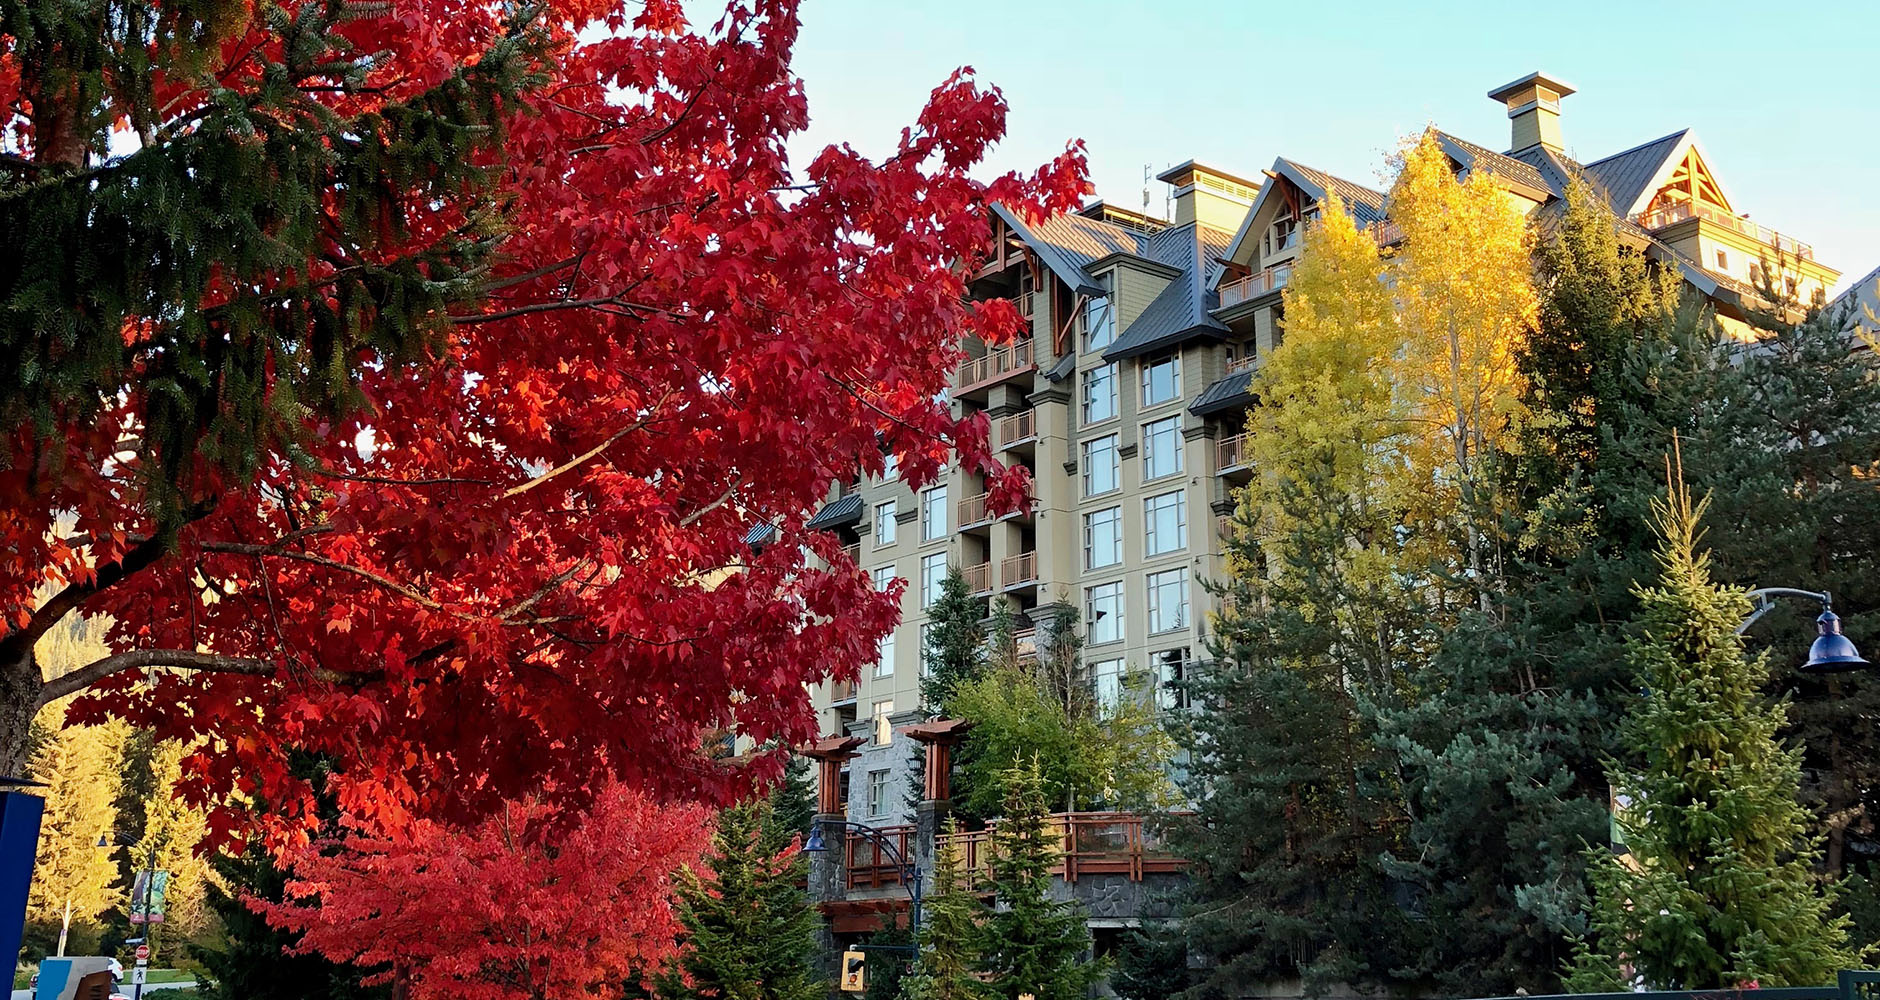 Autumnal coloured trees in Whistler Village, Canada